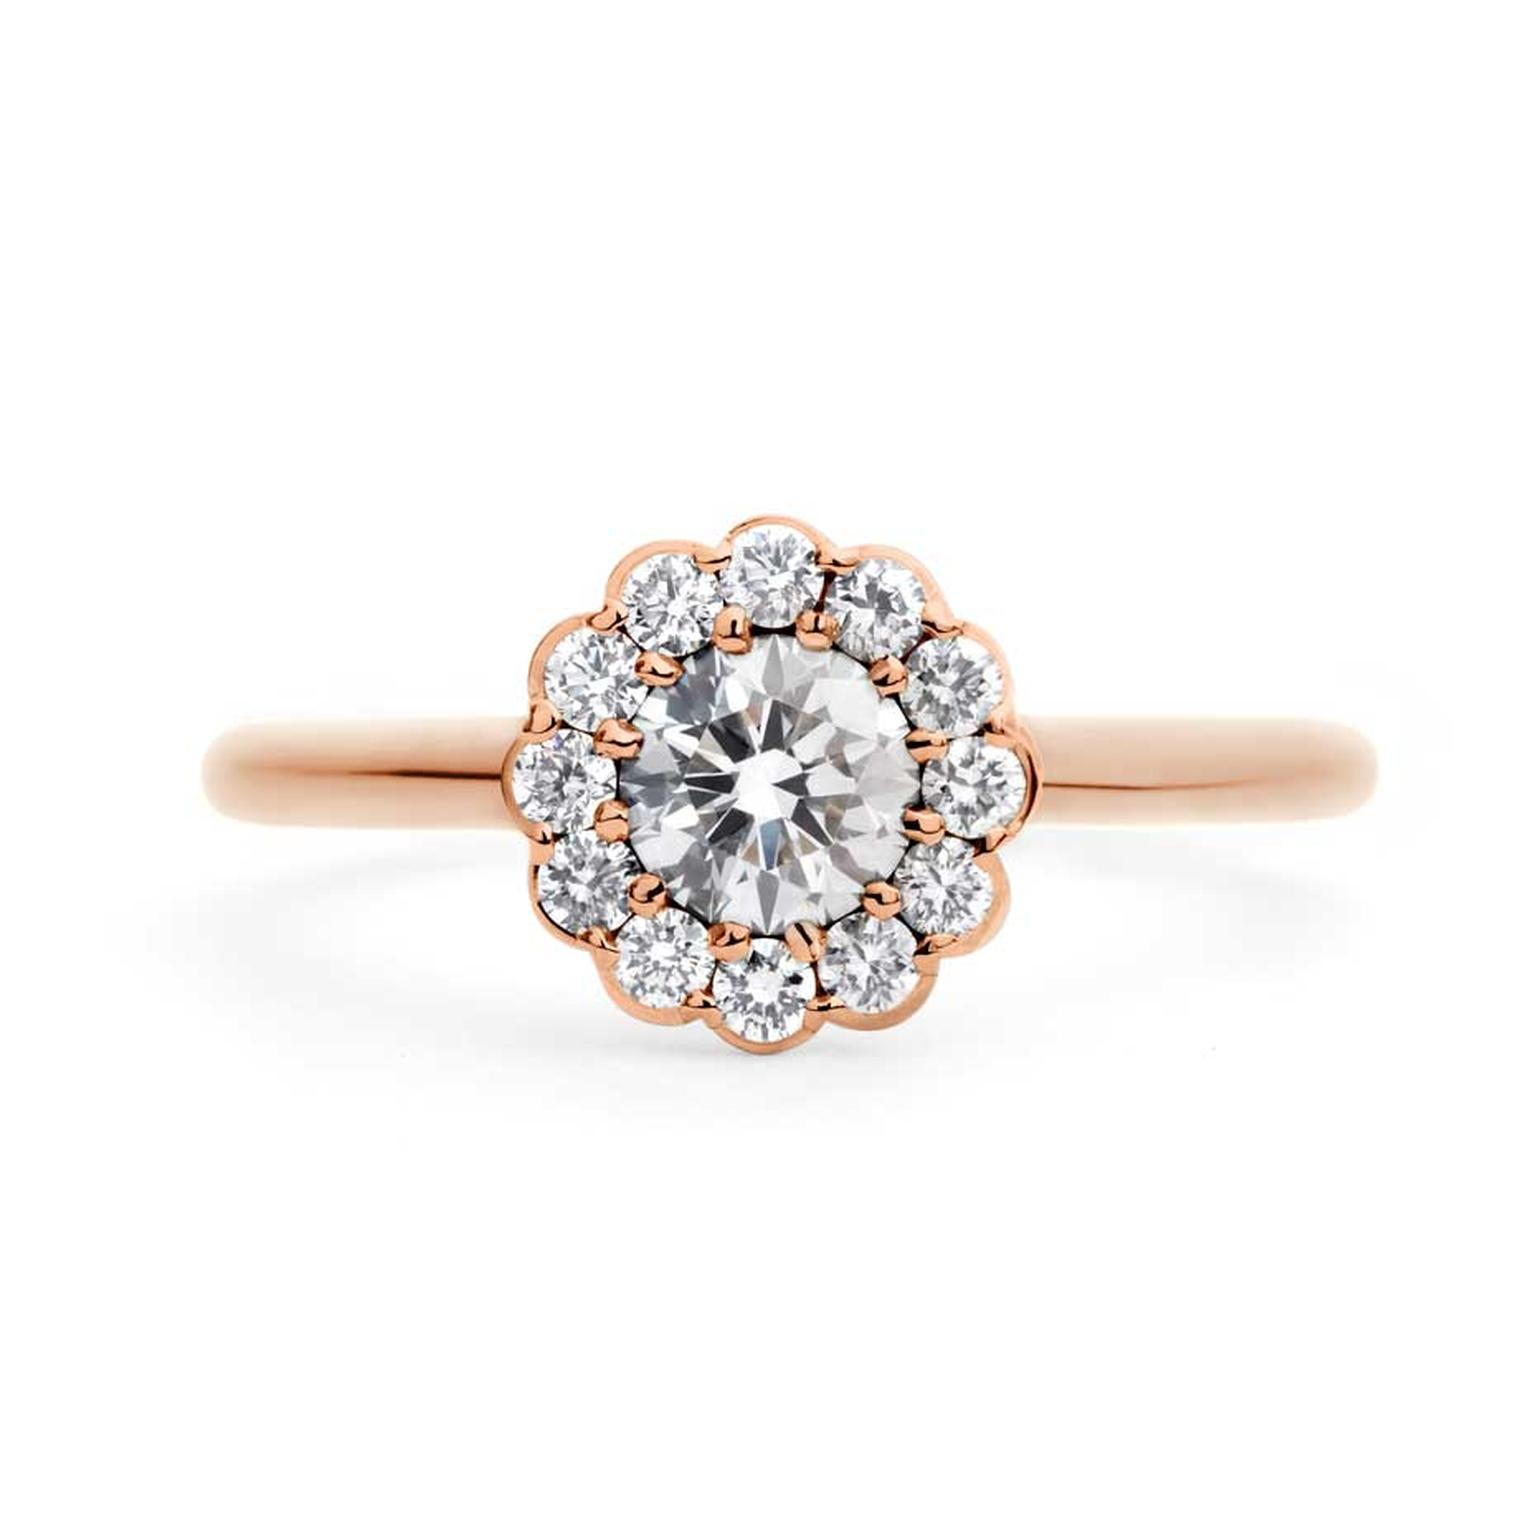 British Jeweller Andrew Geoghegan S Cannelé Twist Rose Gold Engagement Ring Has A Vintage Feel